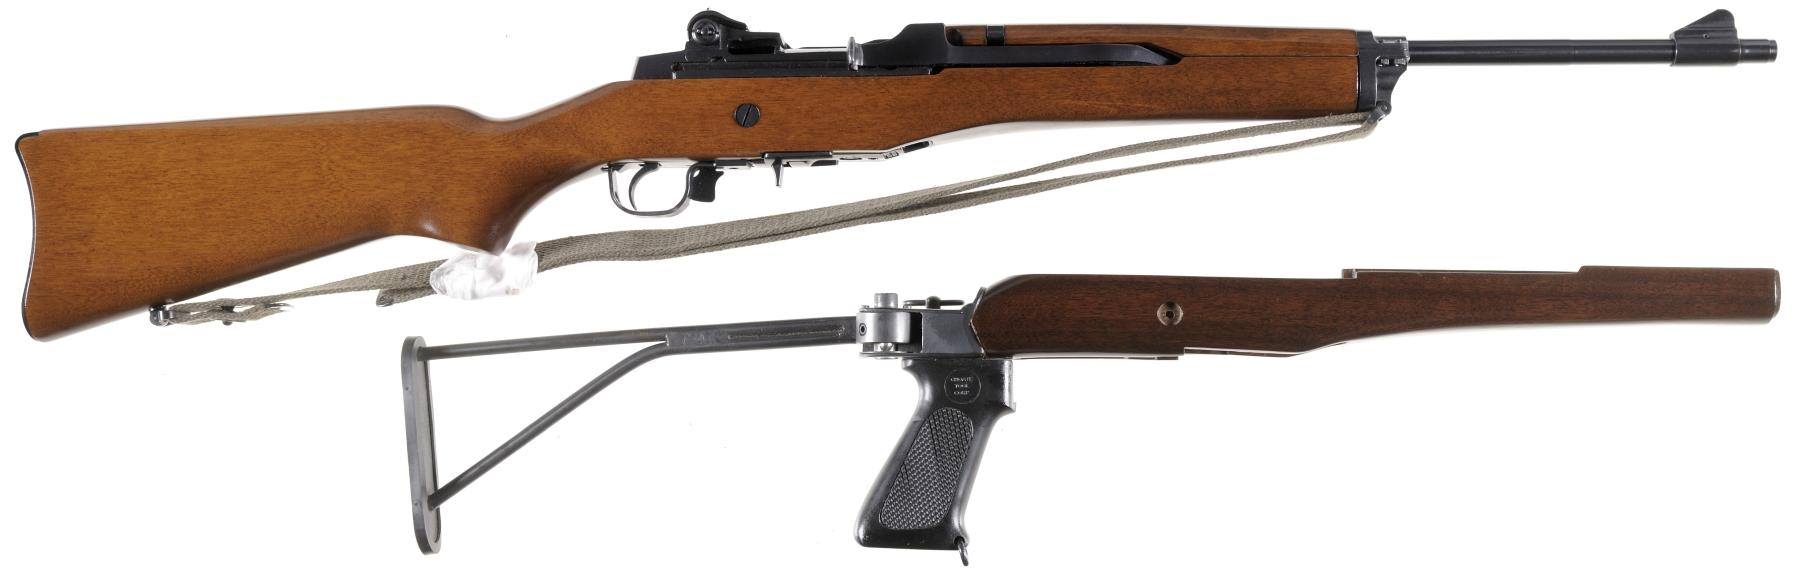 Ruger Mini-14 Semi-Automatic Carbine with Accessories